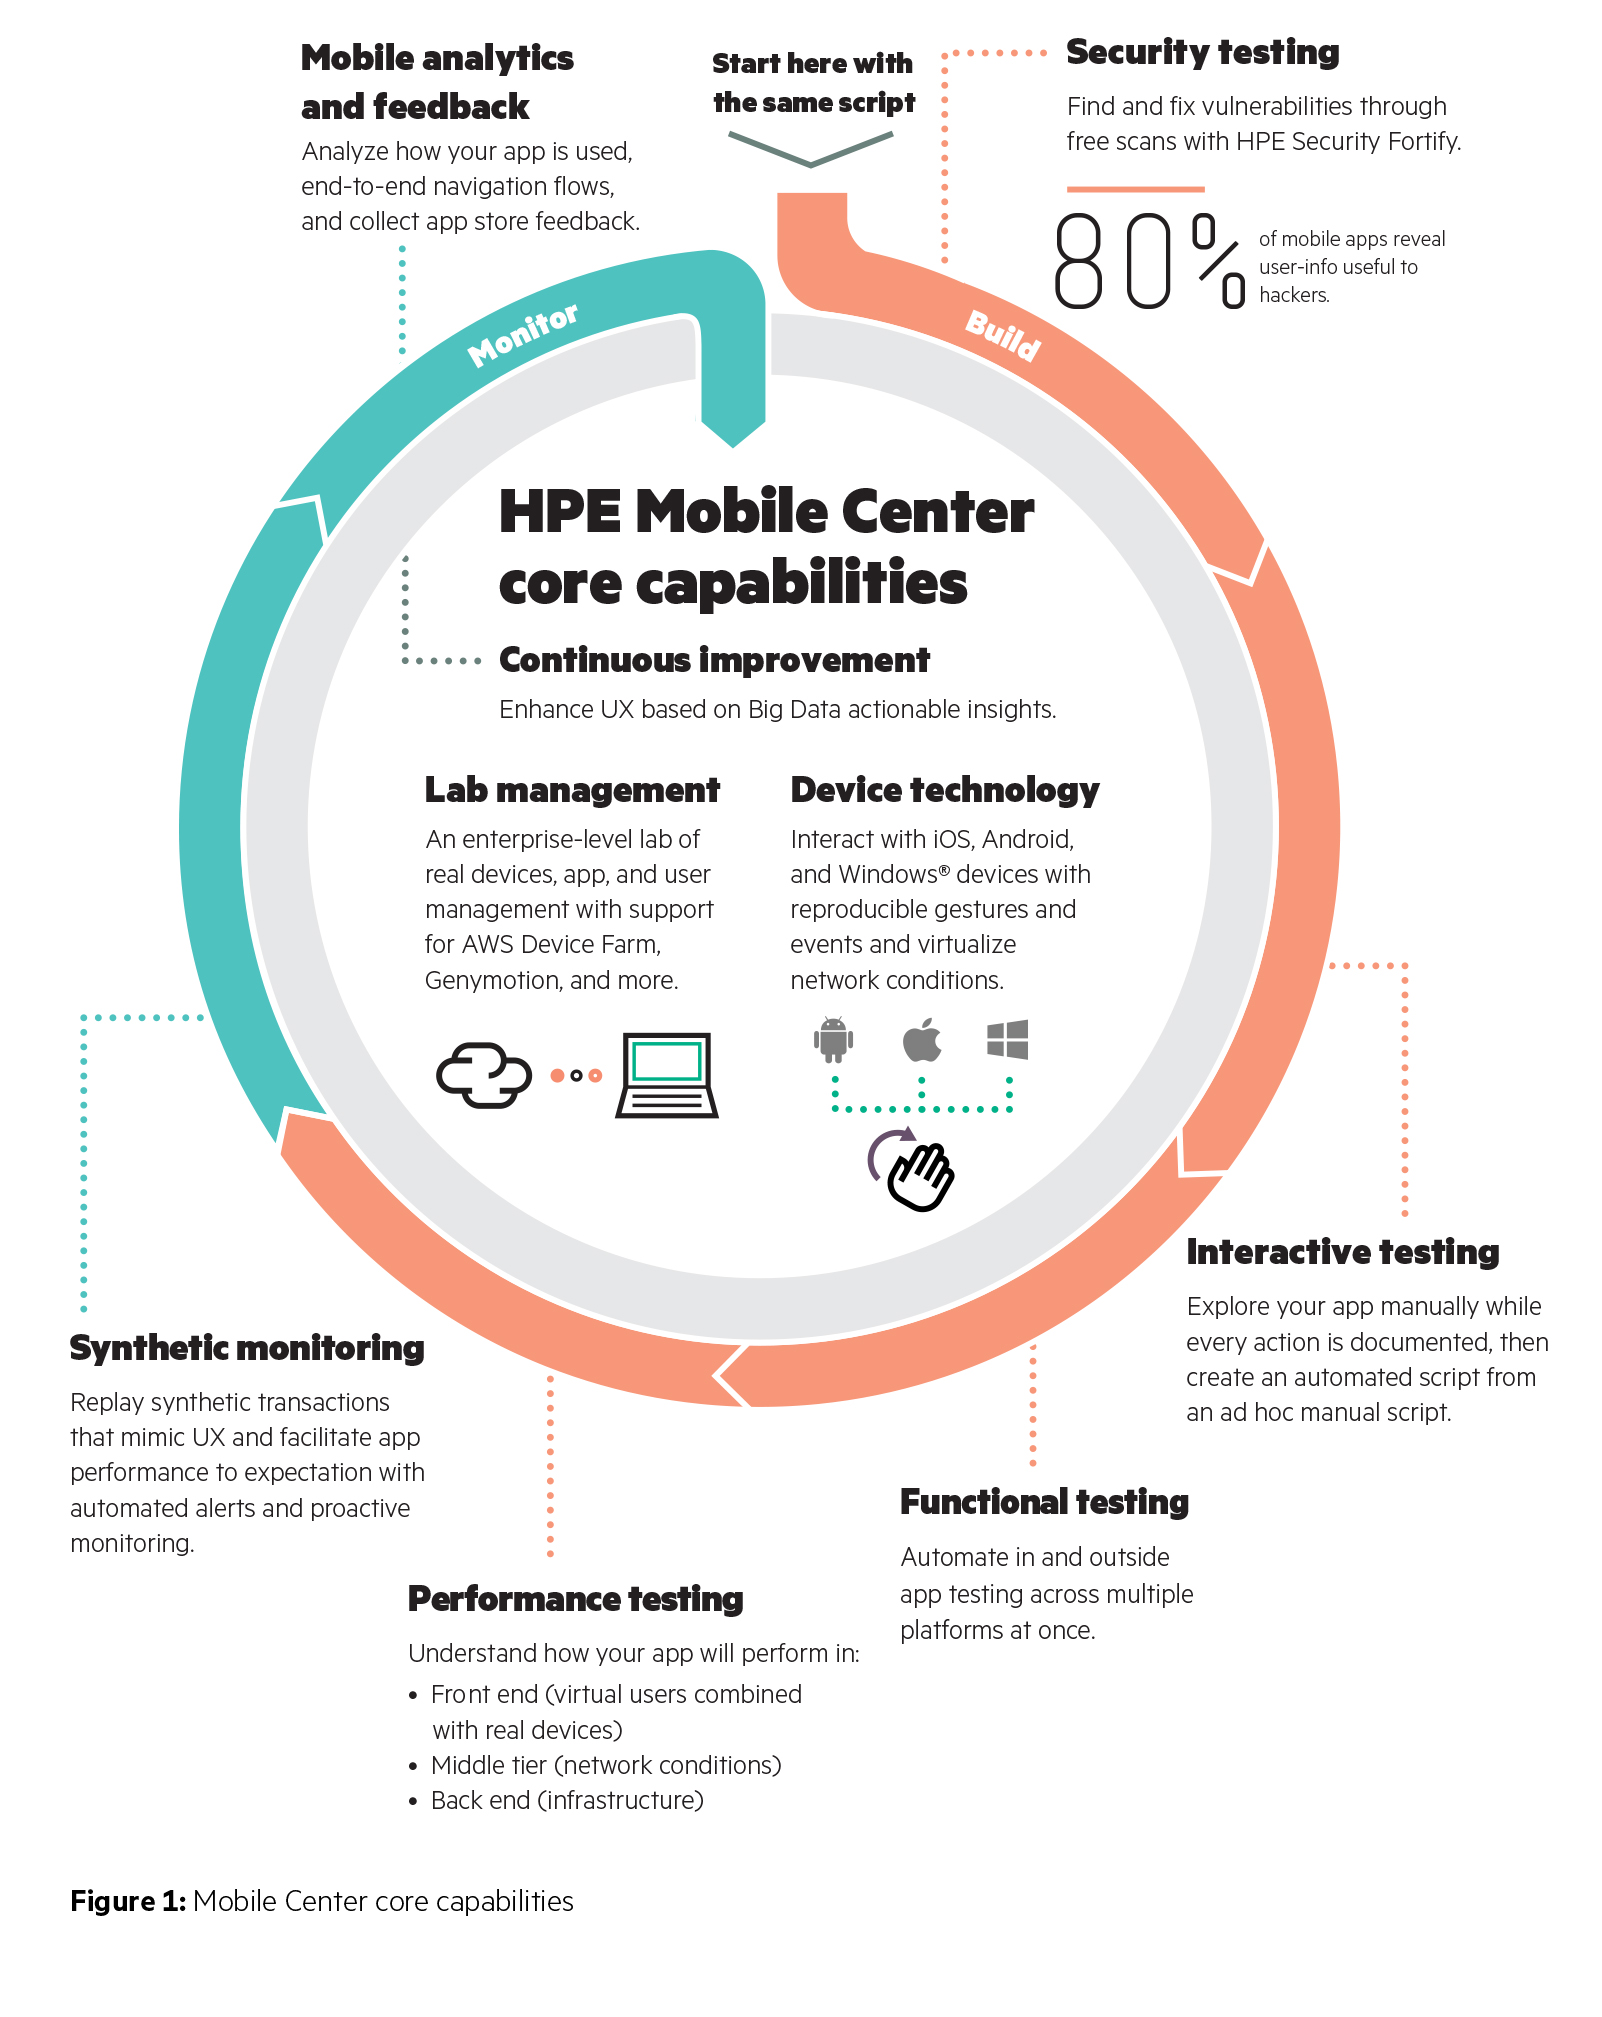 TSM - Master every stage of your mobile app lifecycle with HPE